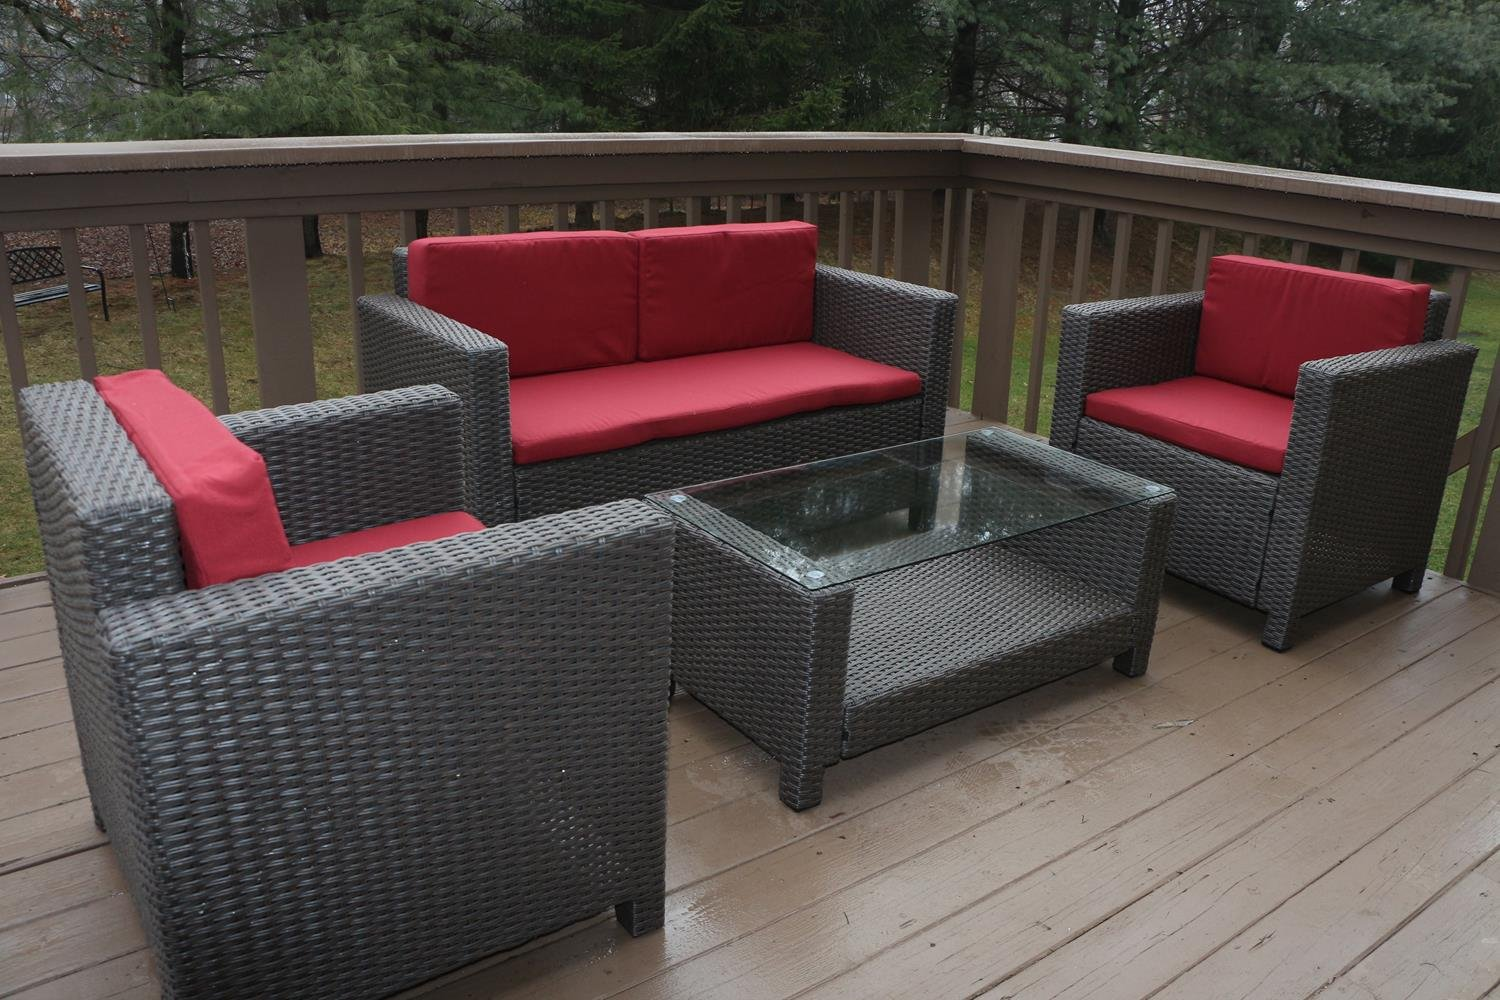 modern outdoor furniture cheap. Amazon.com: Oliver Smith - Large 4 Pc Modern Rattan Wiker Sofa Set Outdoor Patio Furniture Aluminum Frame With Ottoman 1127 Red: Kitchen \u0026 Dining Cheap O